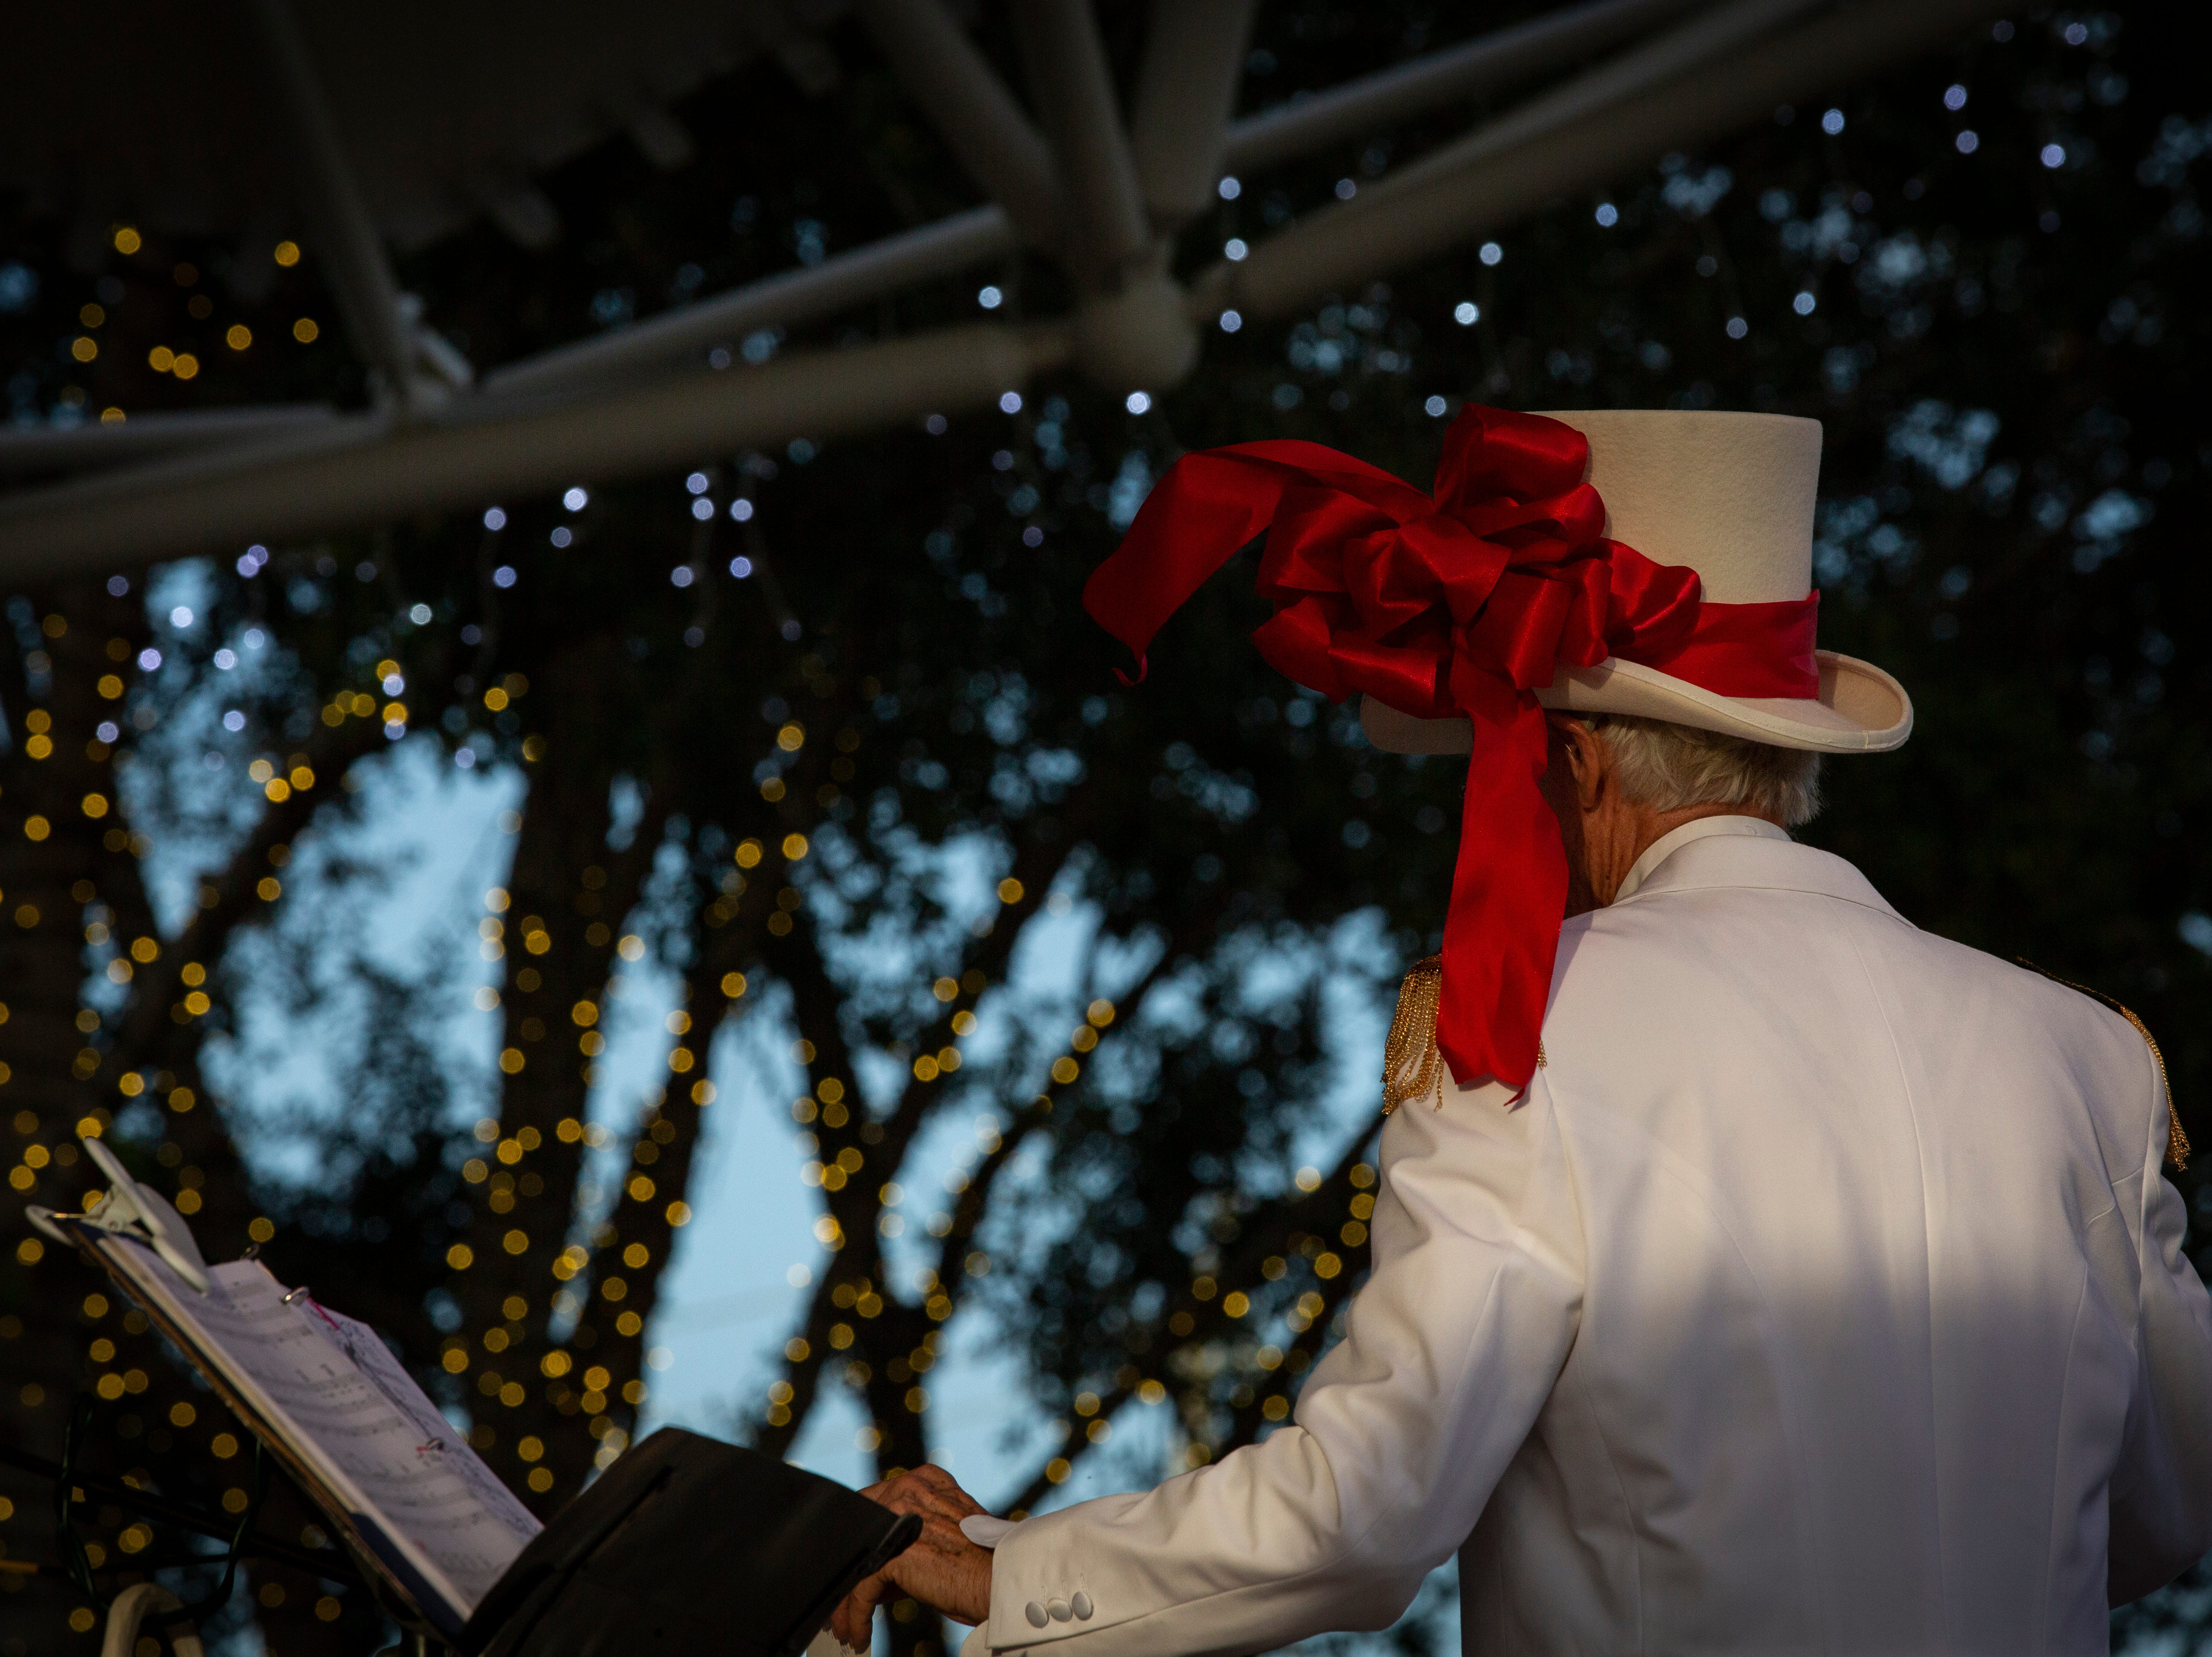 Doug Anderson leads the Bonita Village Band during the 19th annual Holiday in the Park event on Dec. 4, 2018 at the Riverside Park in Bonita Springs.